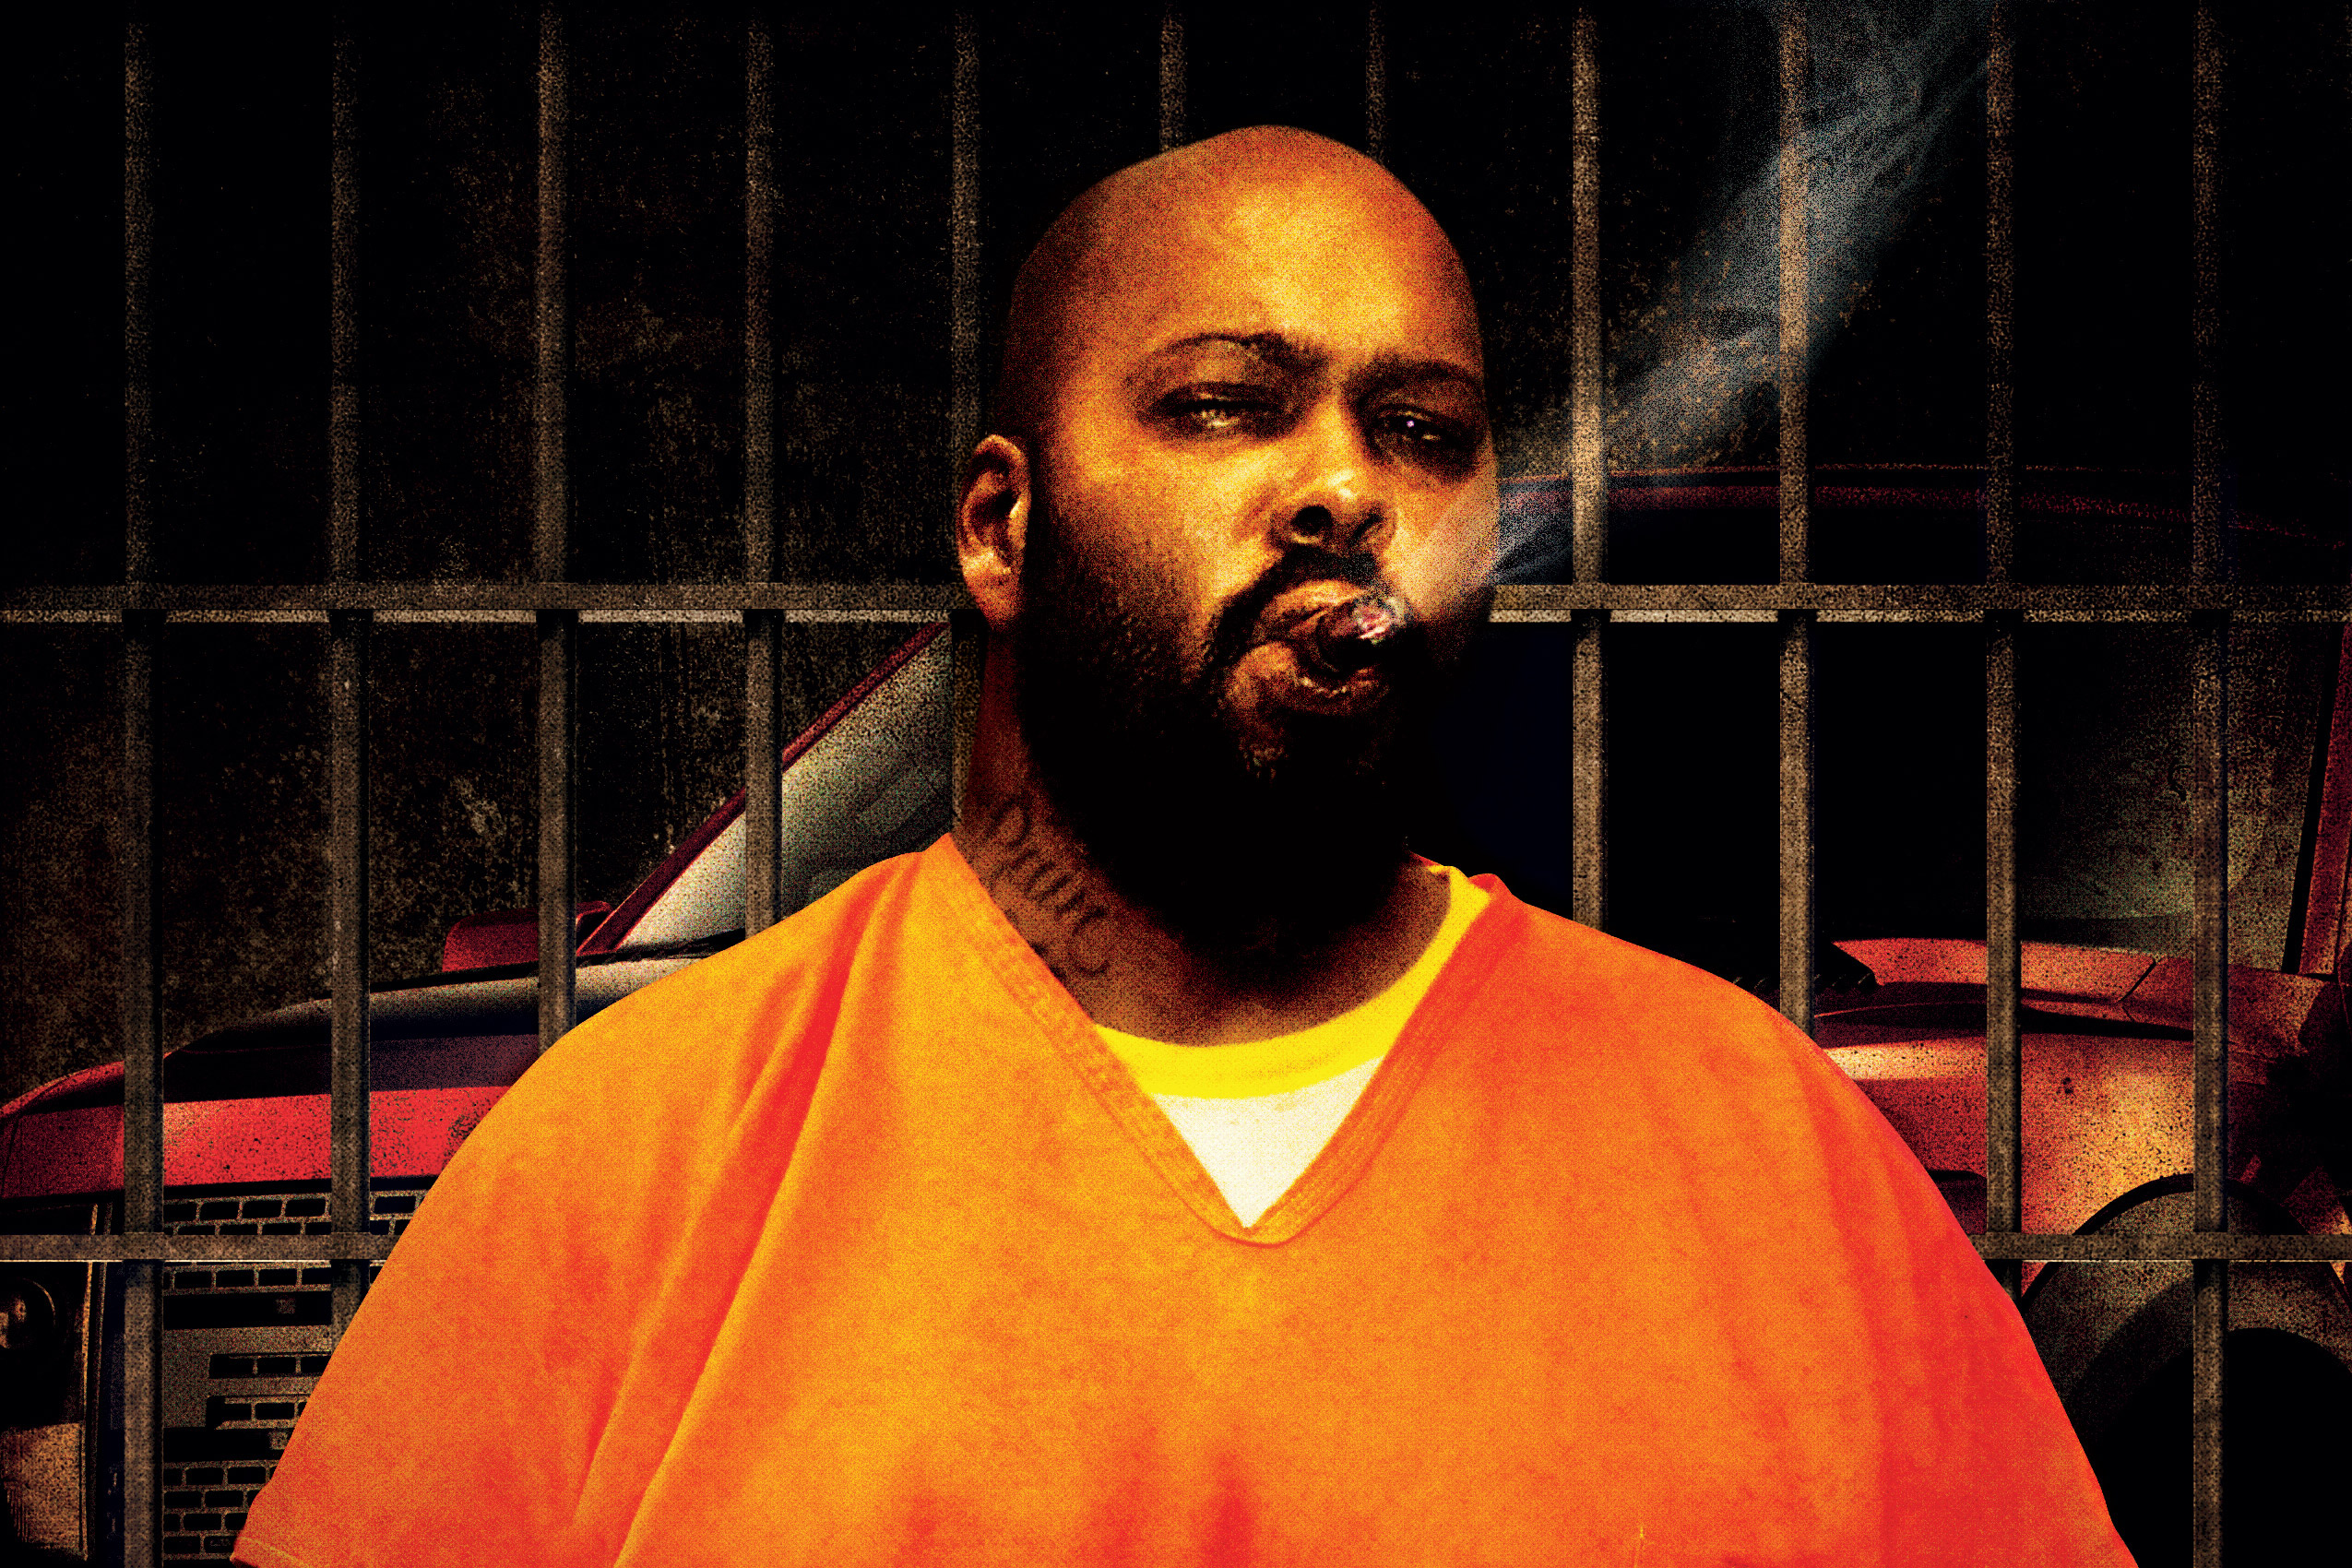 Suge Knight: Death Row Records Label Boss Downfall – Rolling Stone